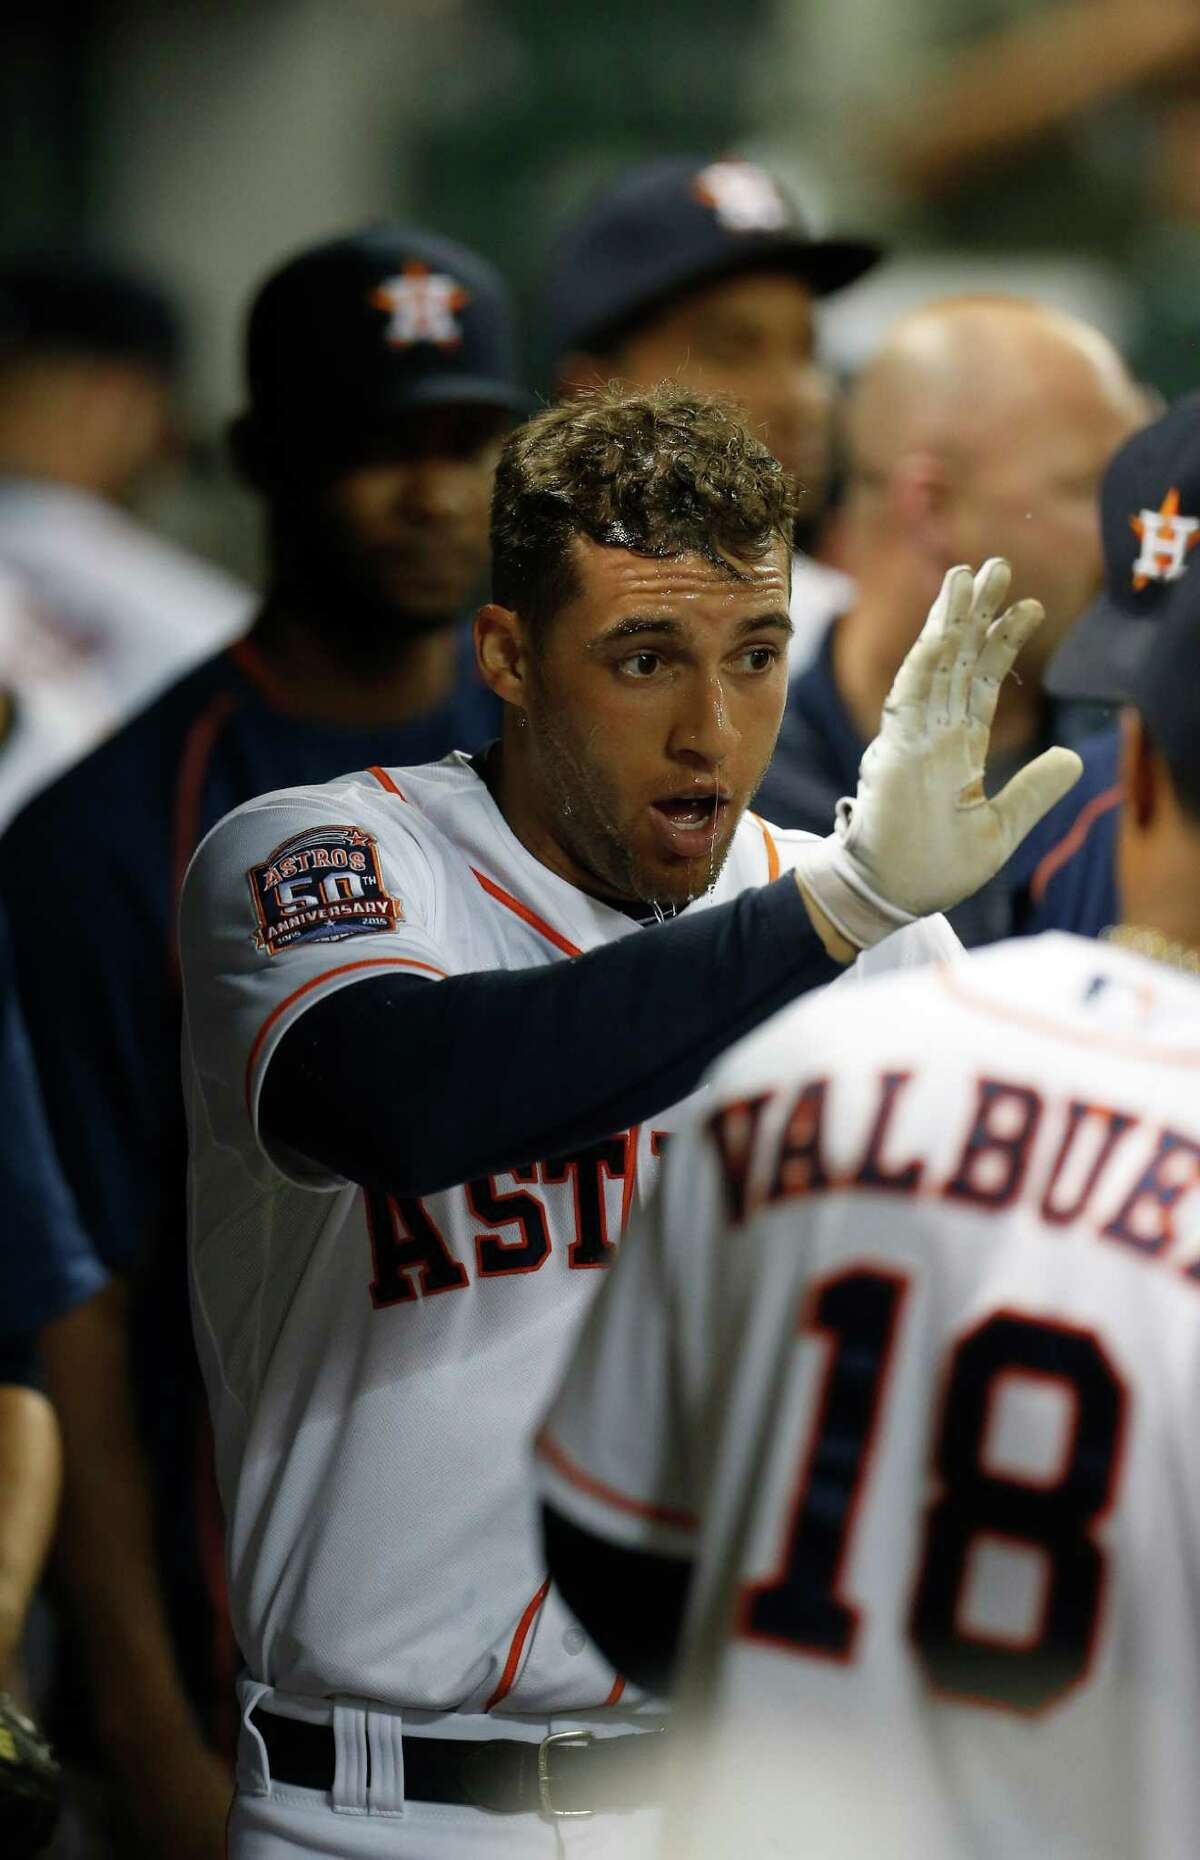 George Springer worked in the offseason to try to avoid another long layoff due to injury.